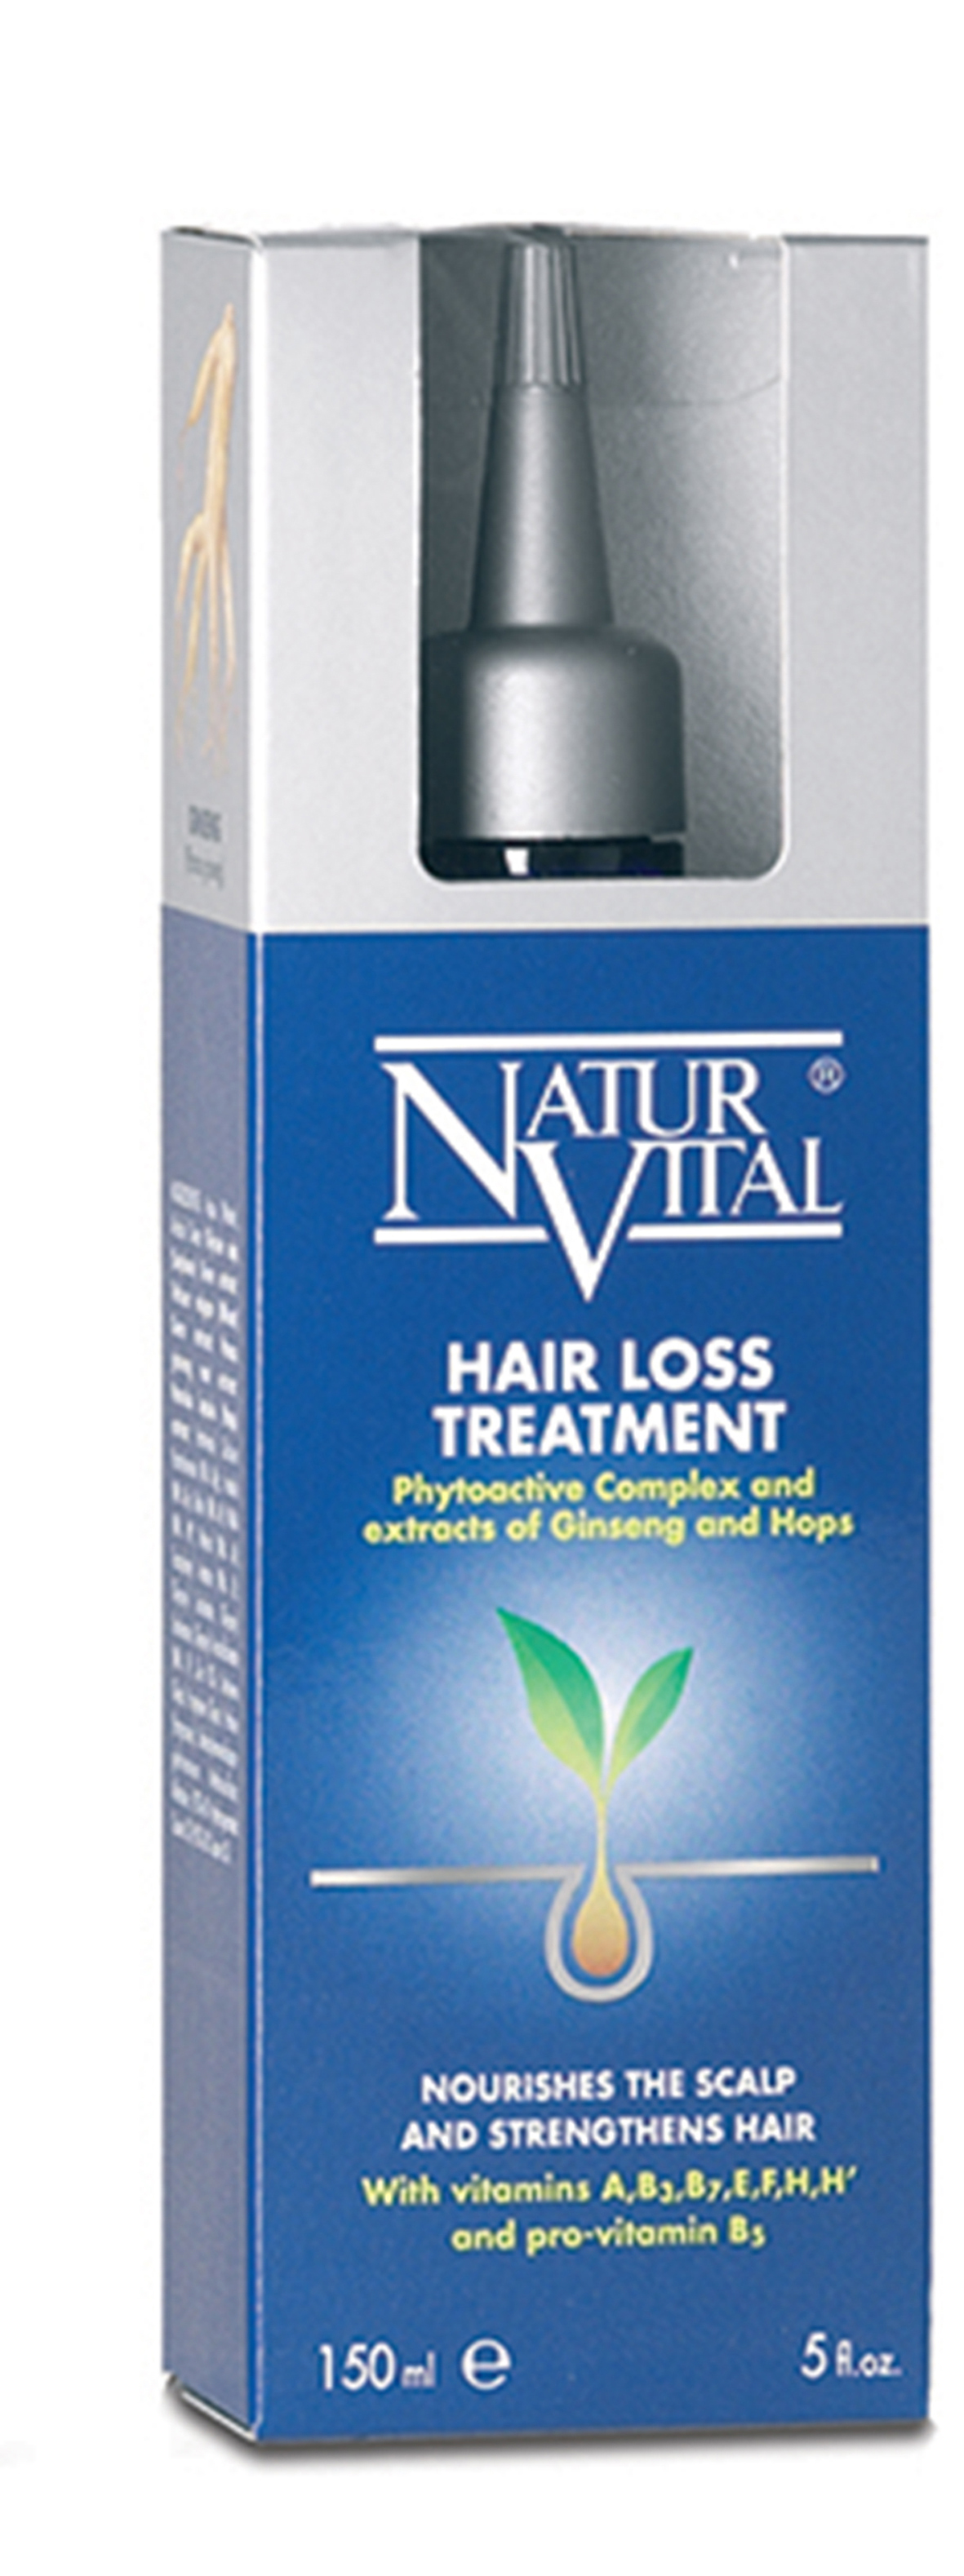 NaturVital hair loss treatment